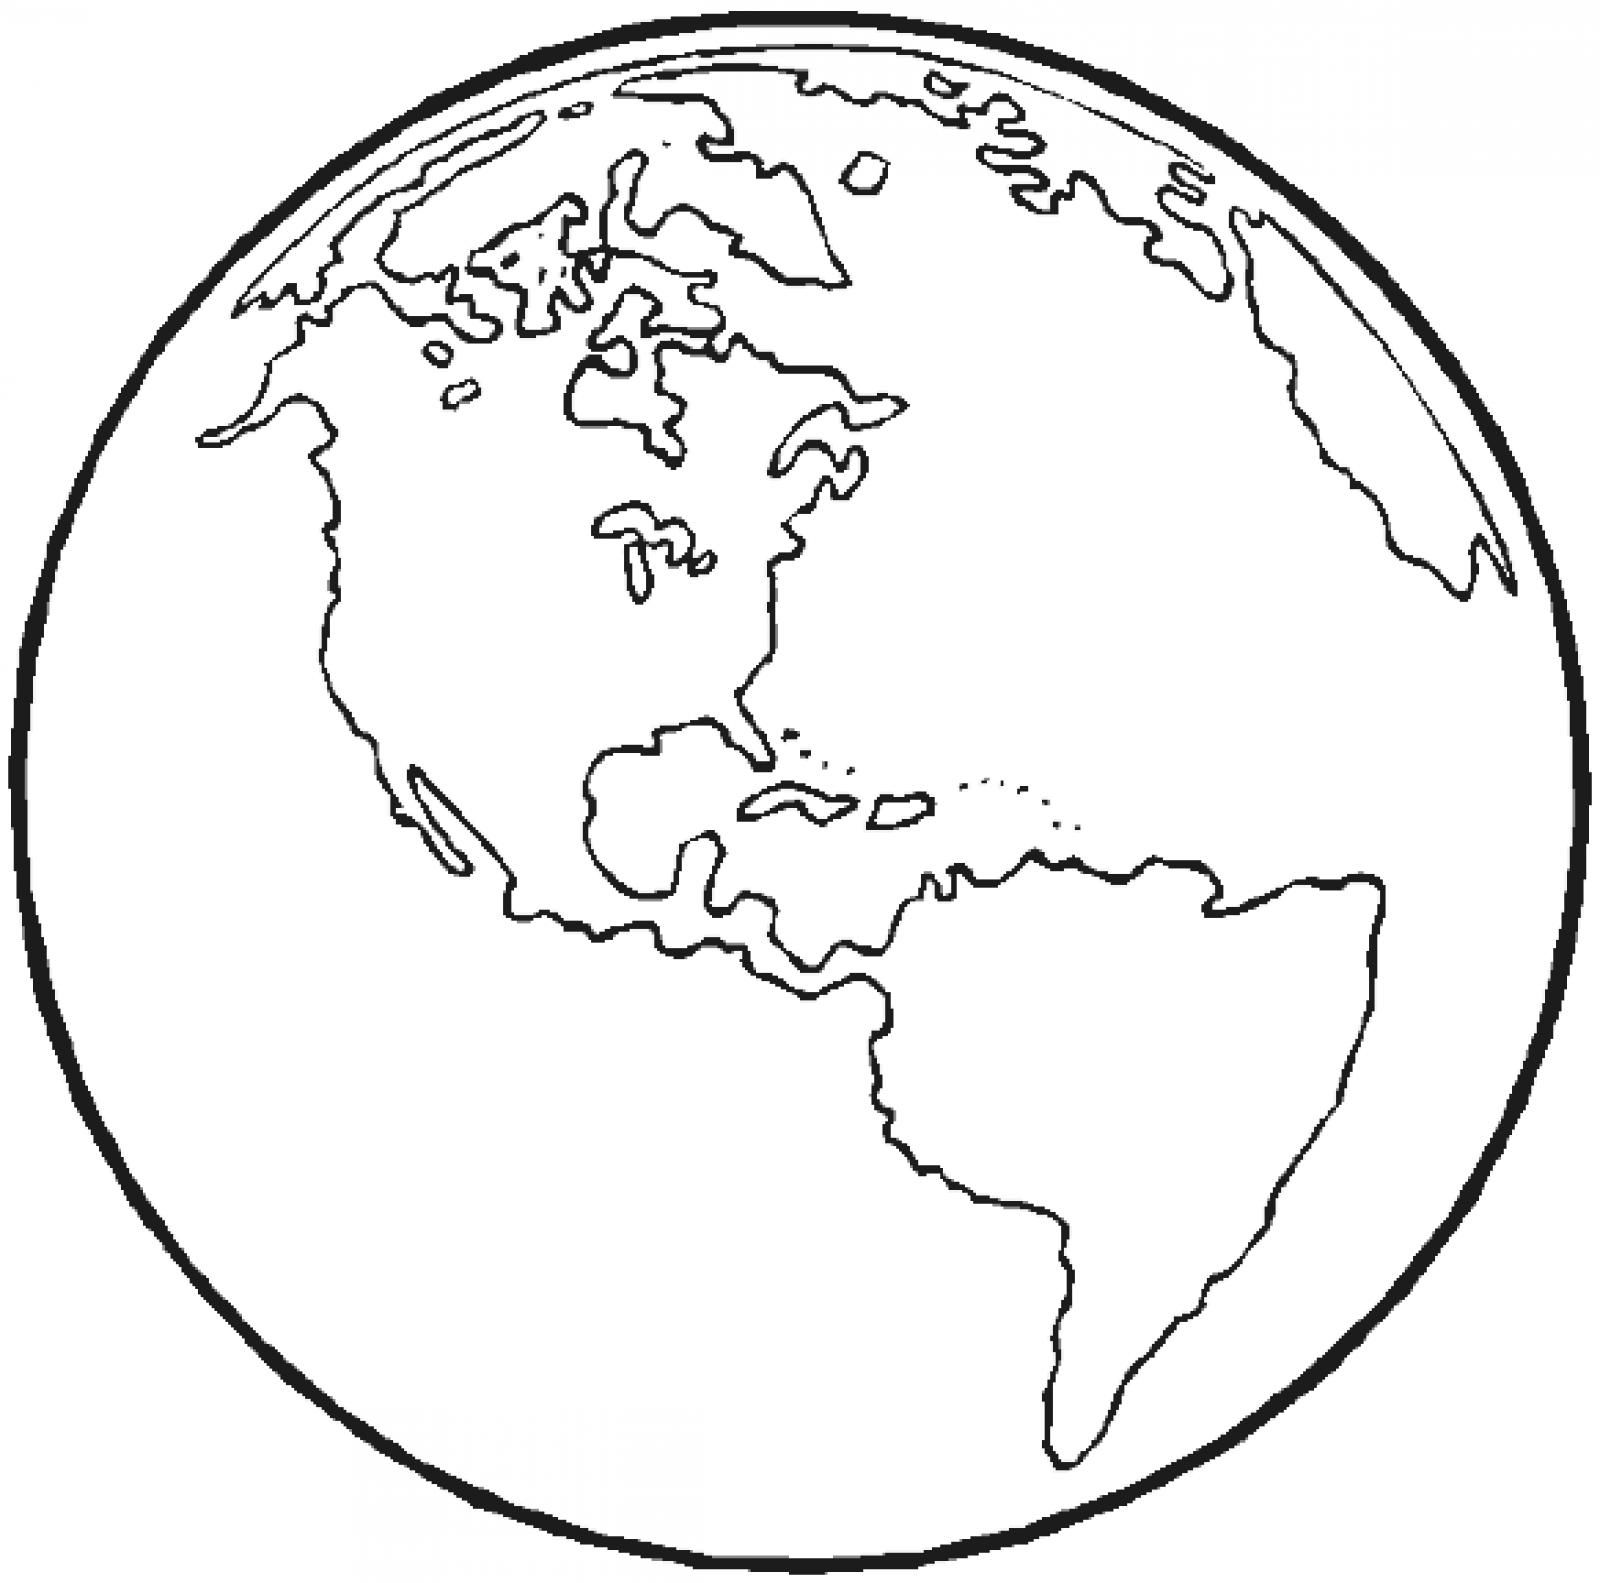 Earth day coloring pages for adults - The Earth Coloring Page